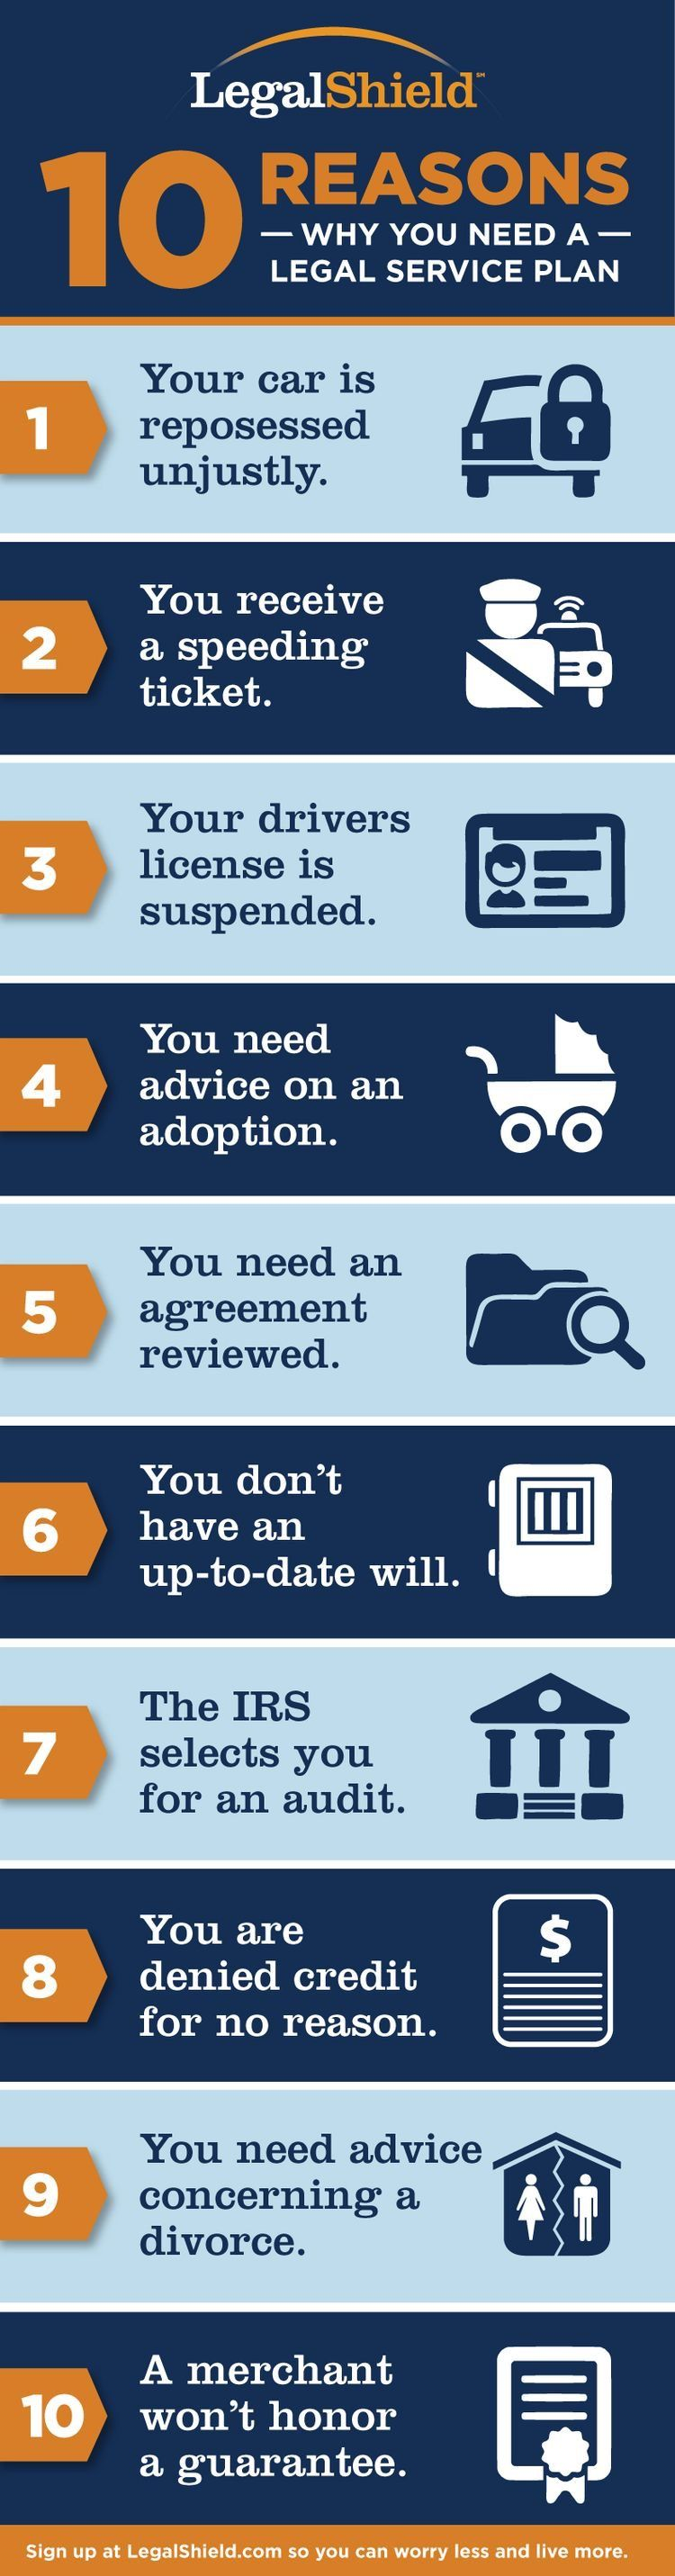 10 Reasons why you need a legal service plan